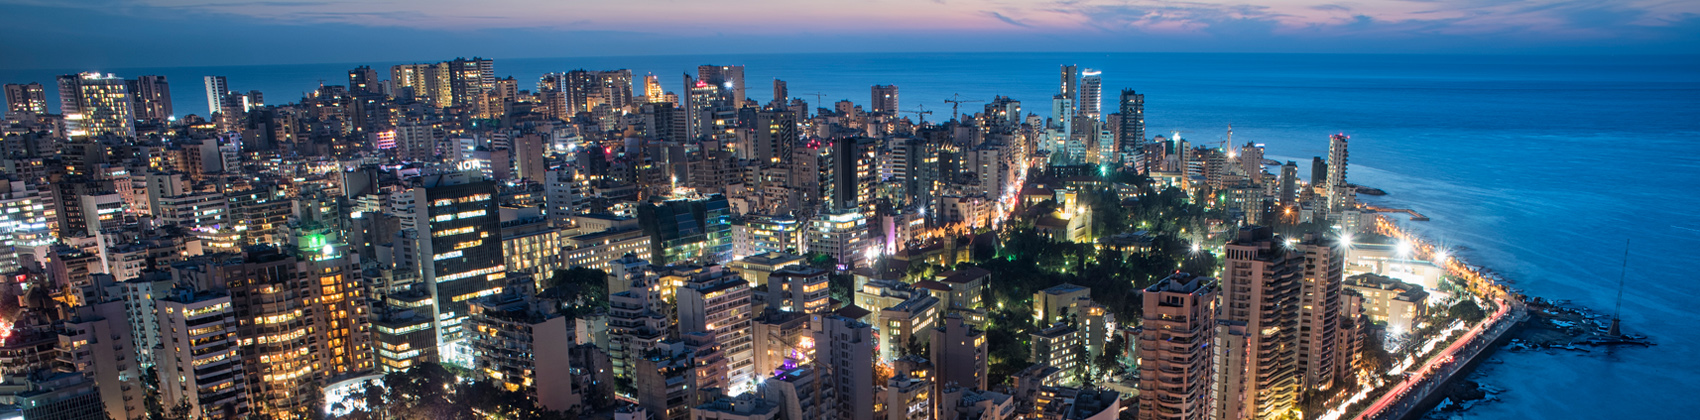 Travel Packages: Lebanon